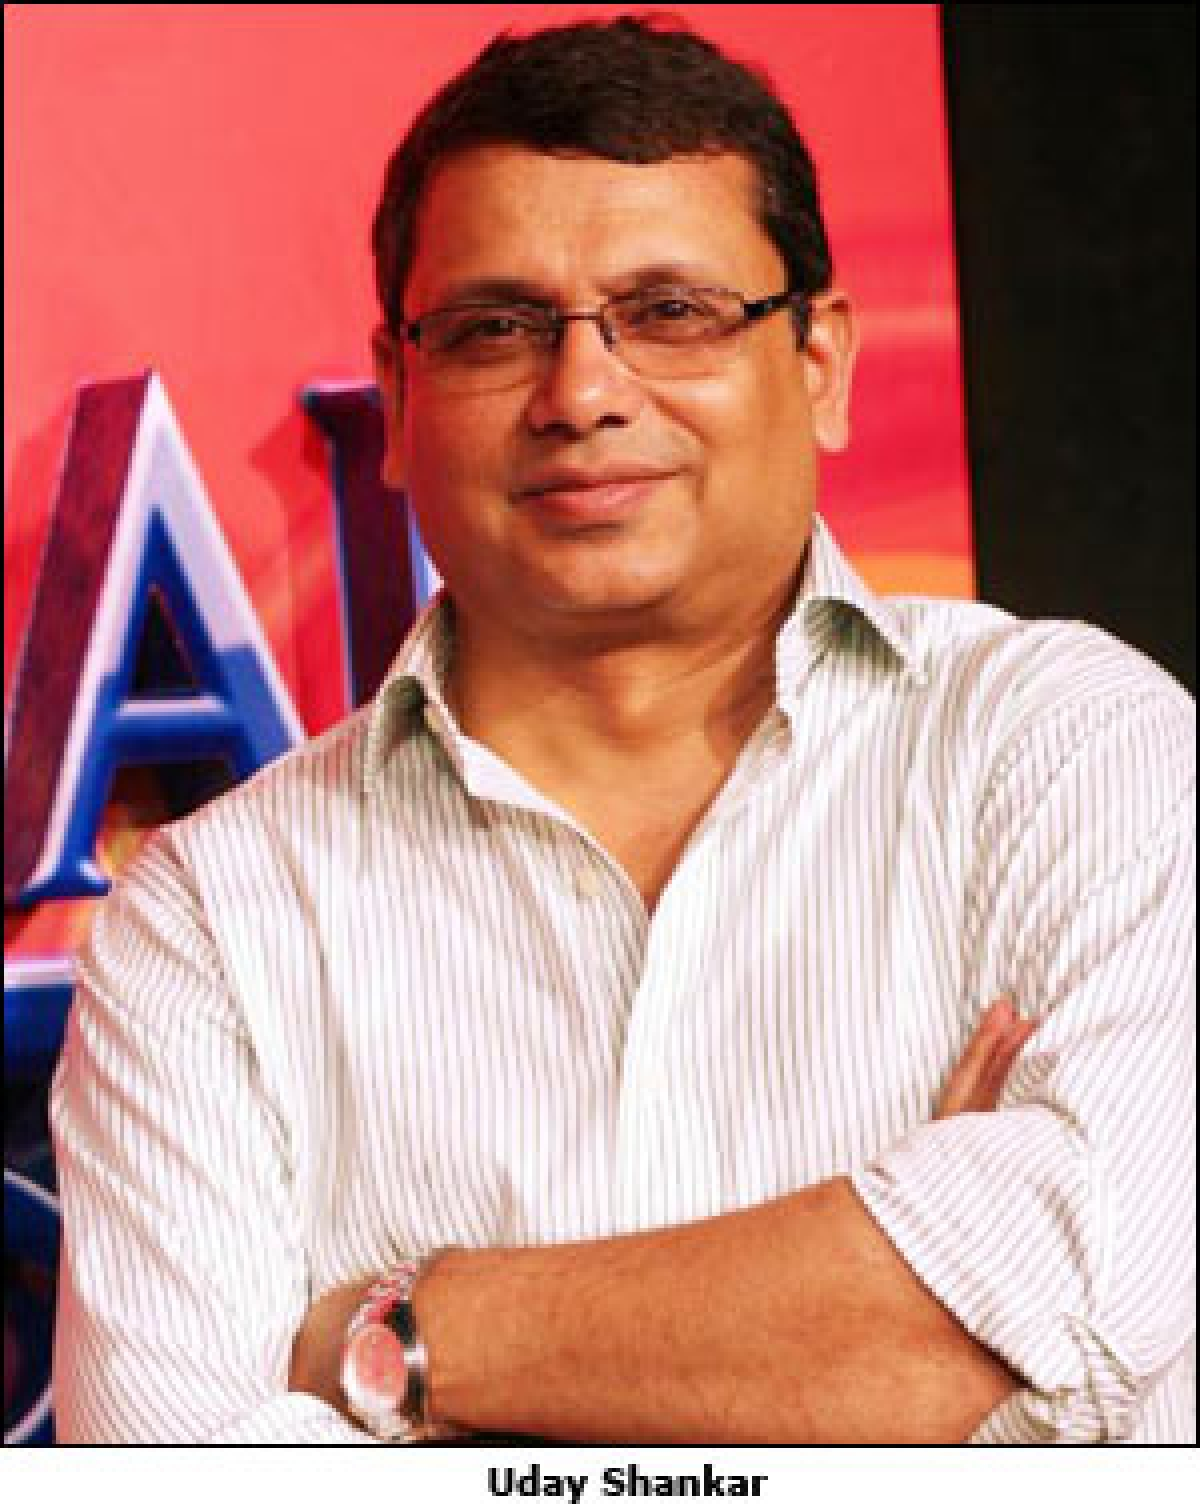 """We will offer all our channels only on RIO"": Uday Shankar, CEO, Star India"